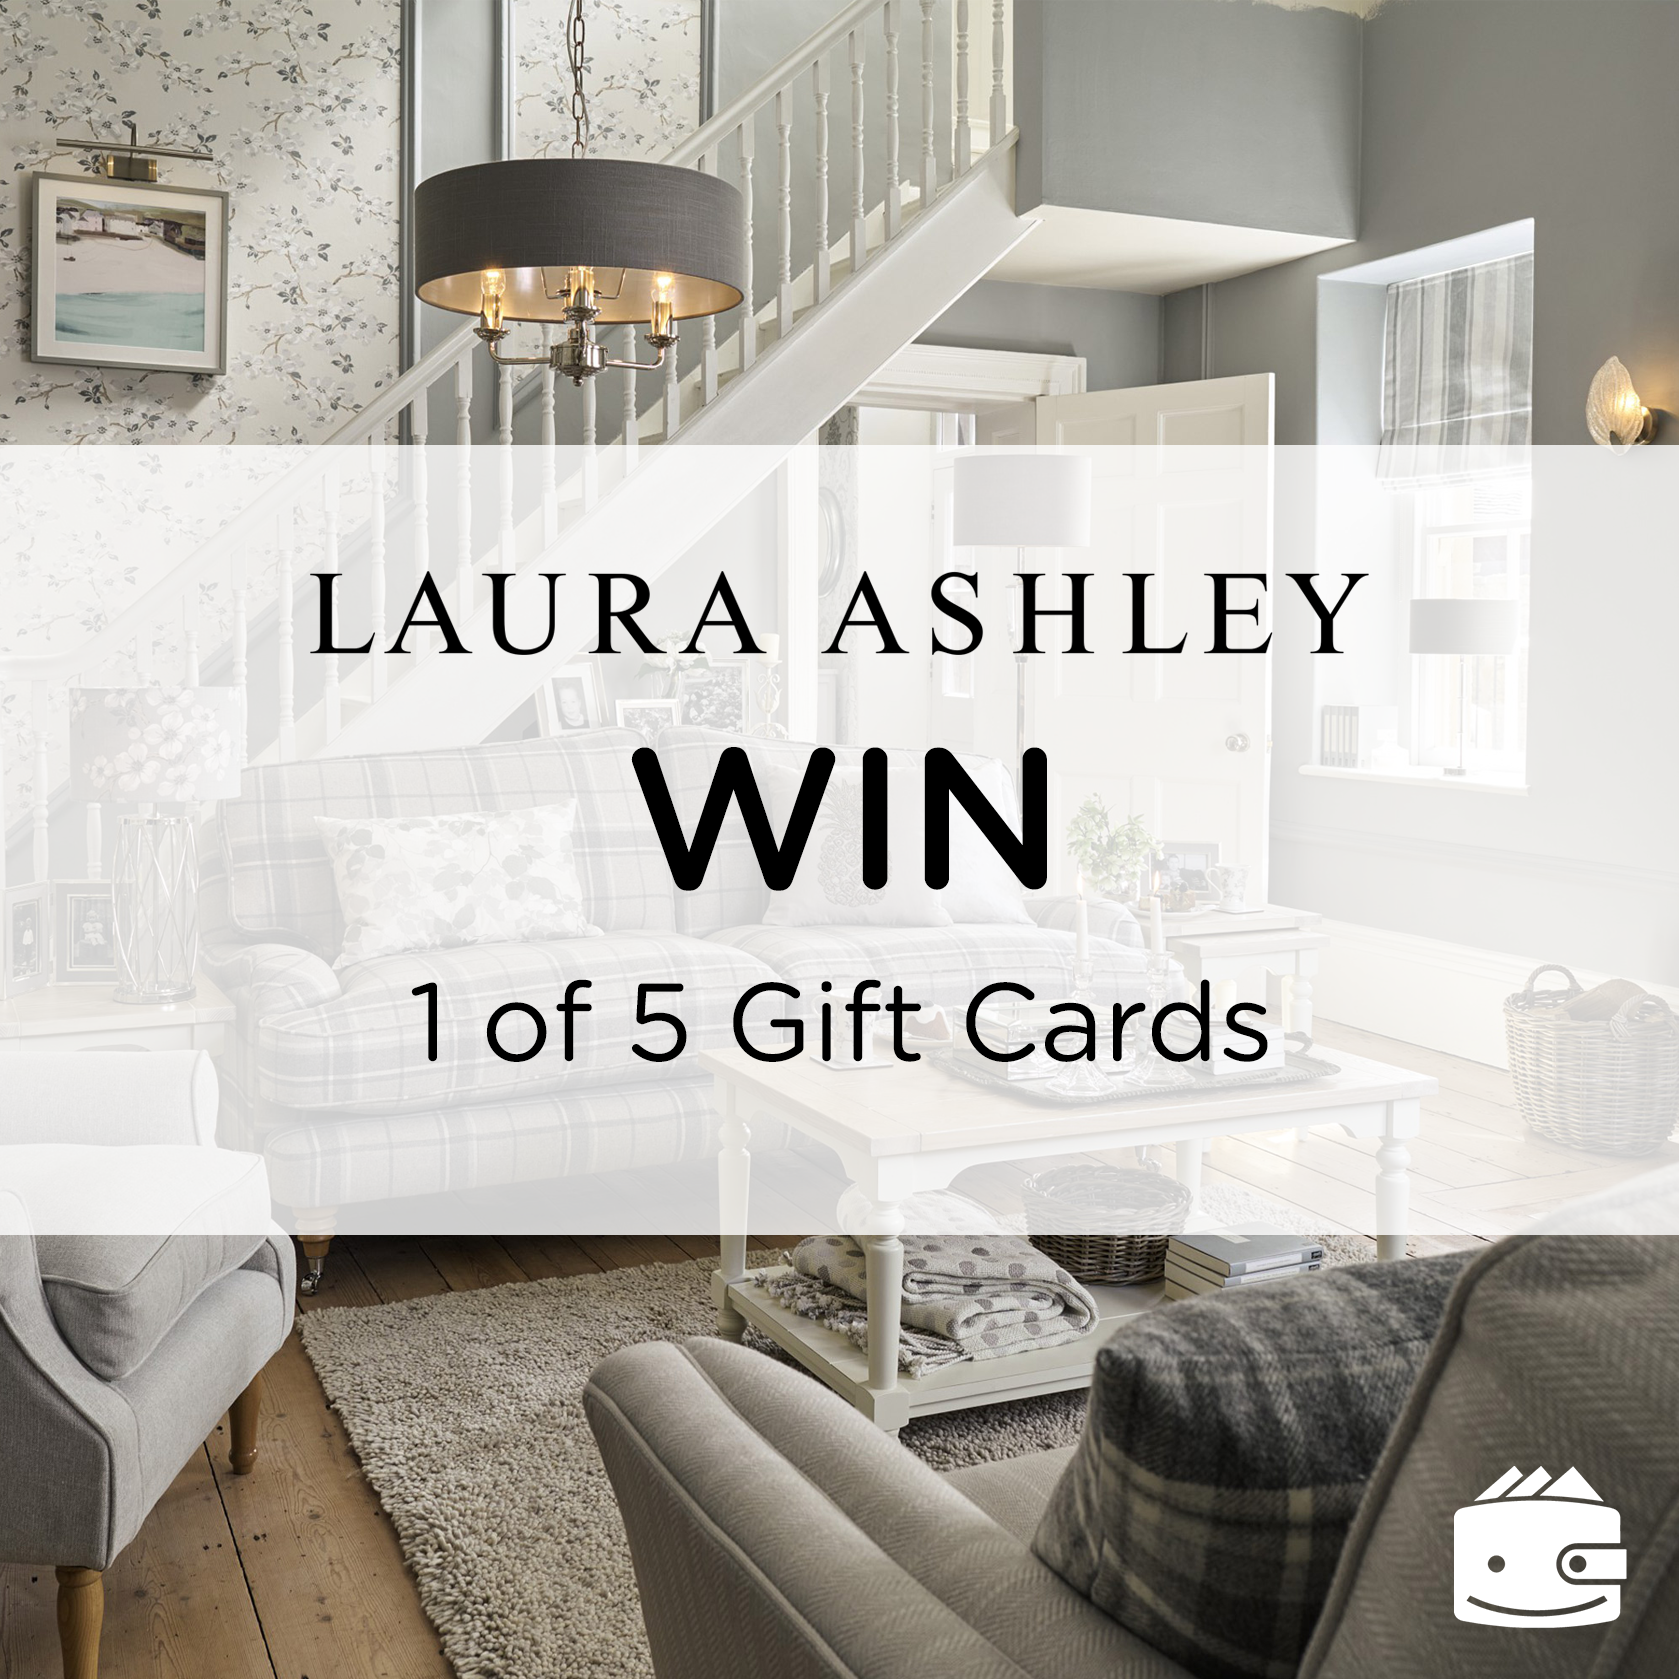 See All Laura Ashley Voucher Codes By Entering This Compeion You Agree To Our Terms Conditions And Website Privacy Policy